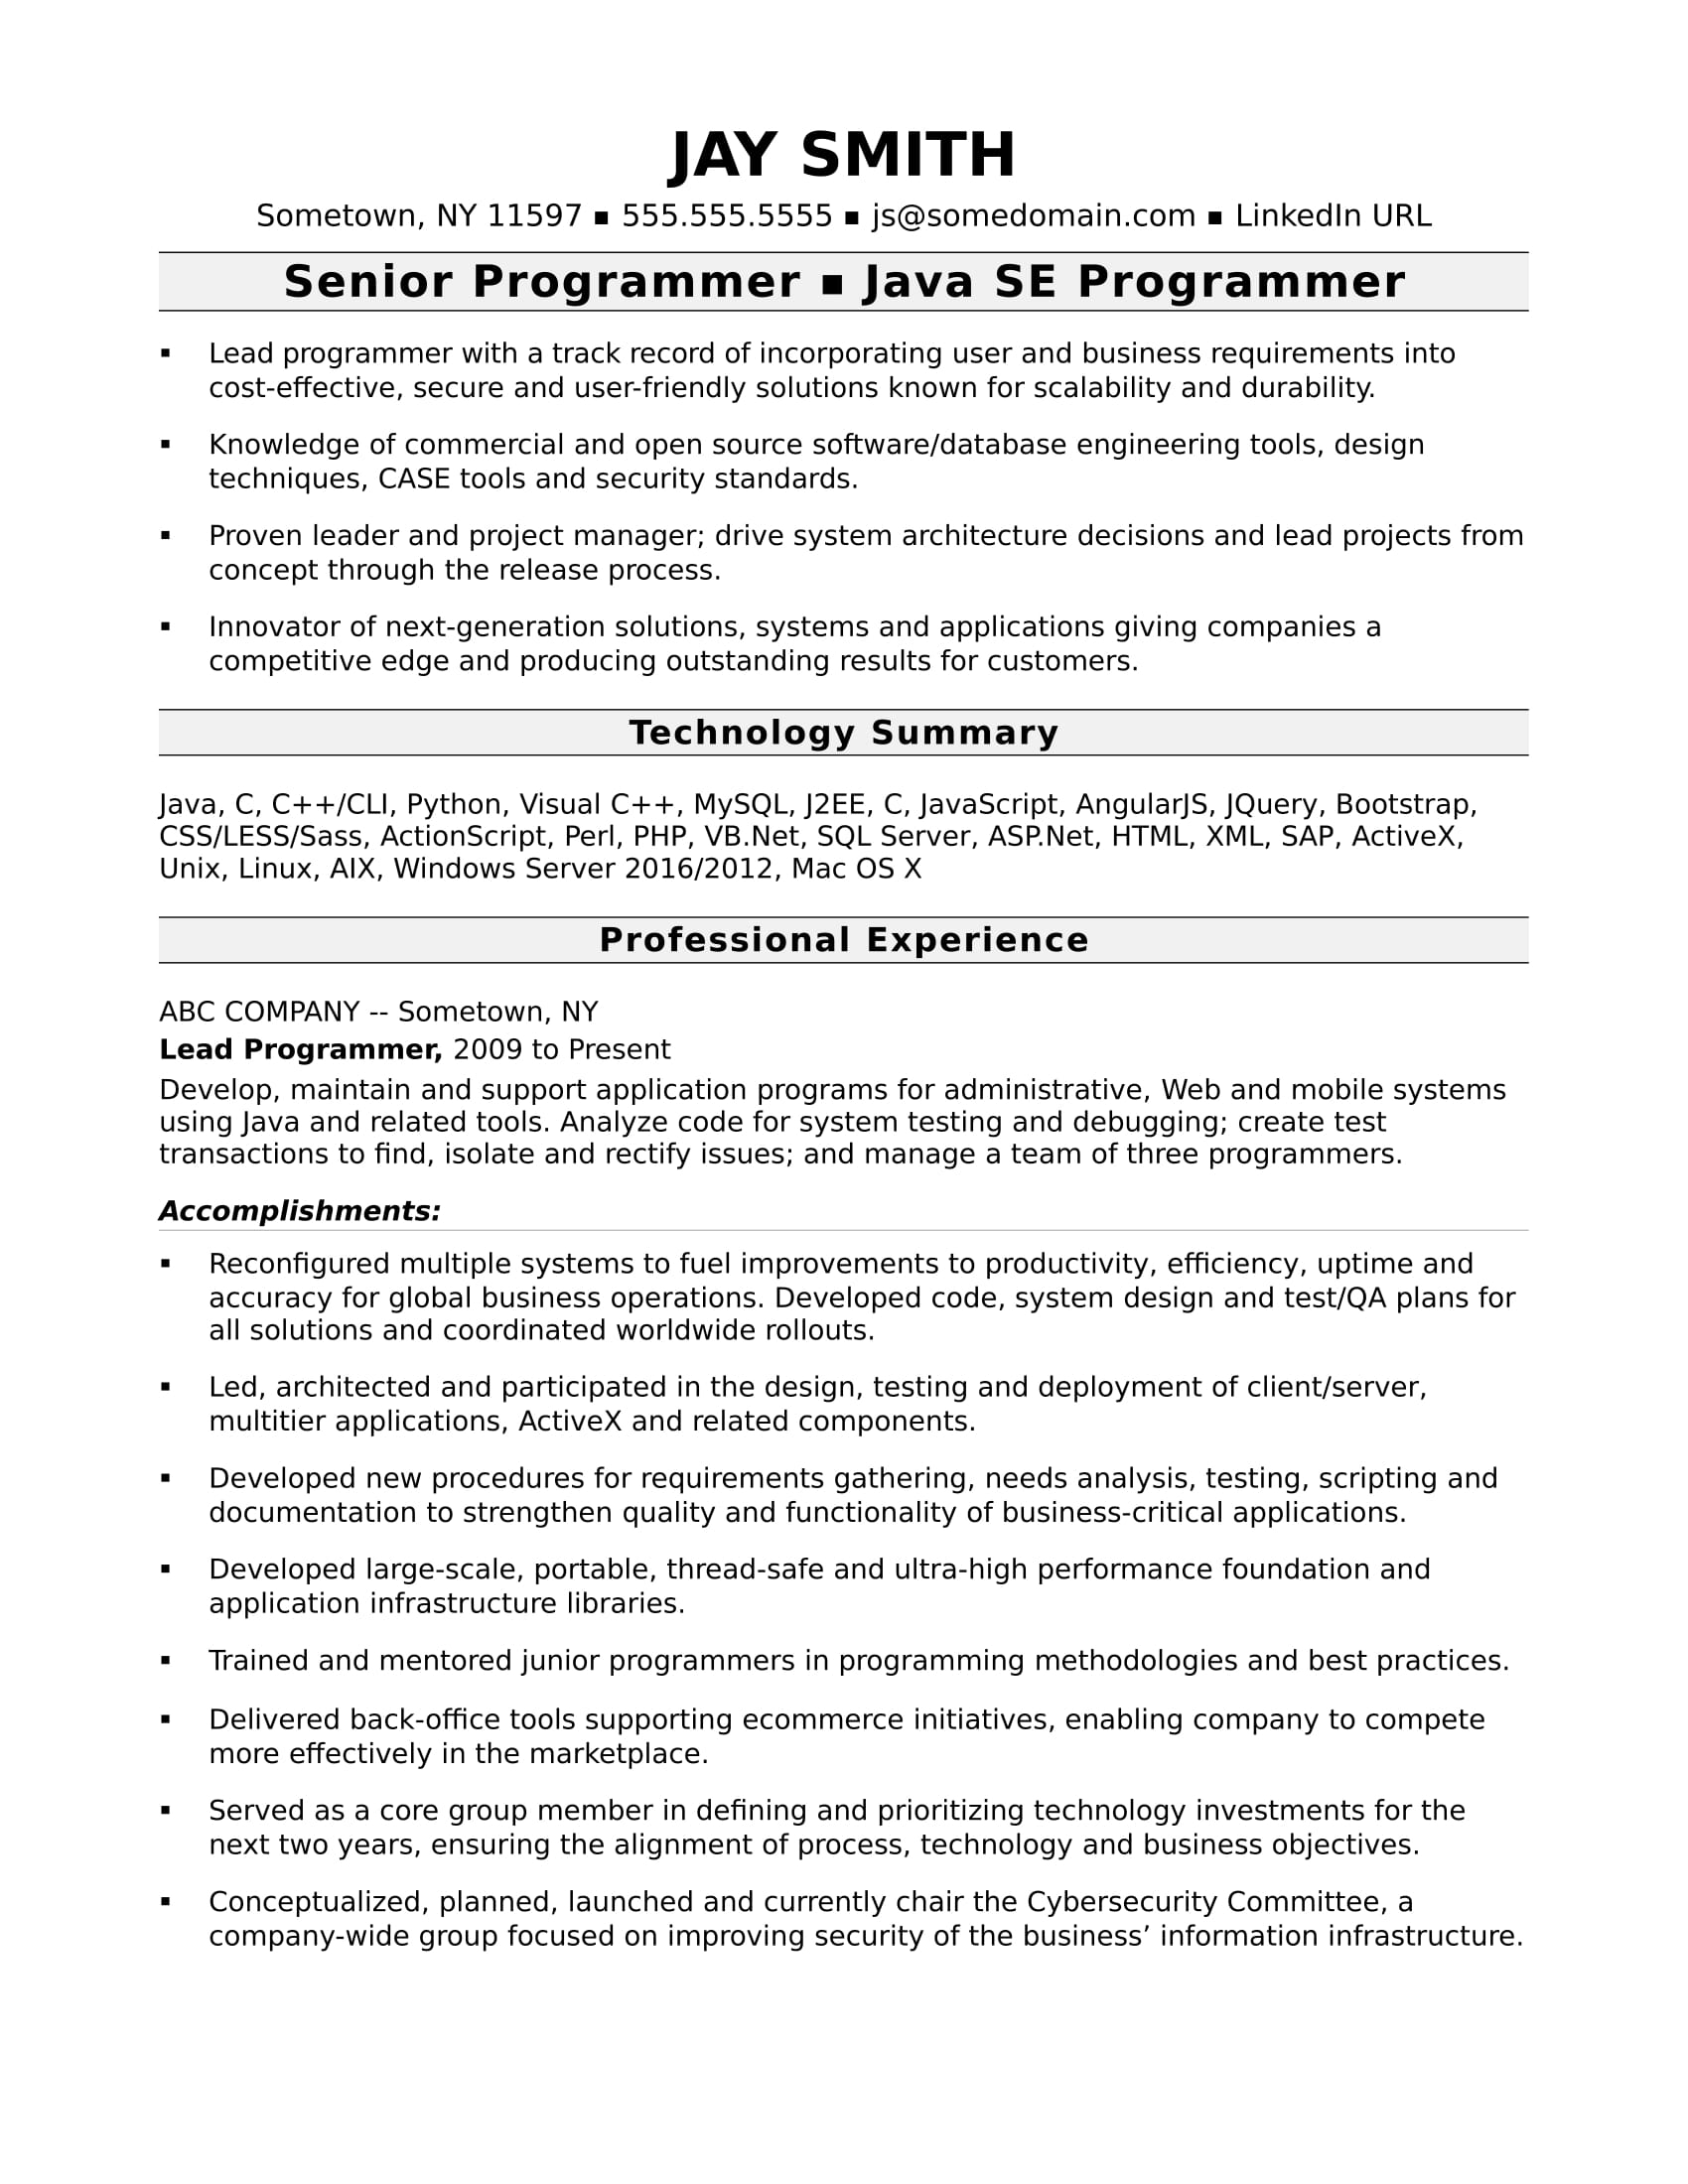 sample resume for an experienced computer programmer - Programmer Resume Example